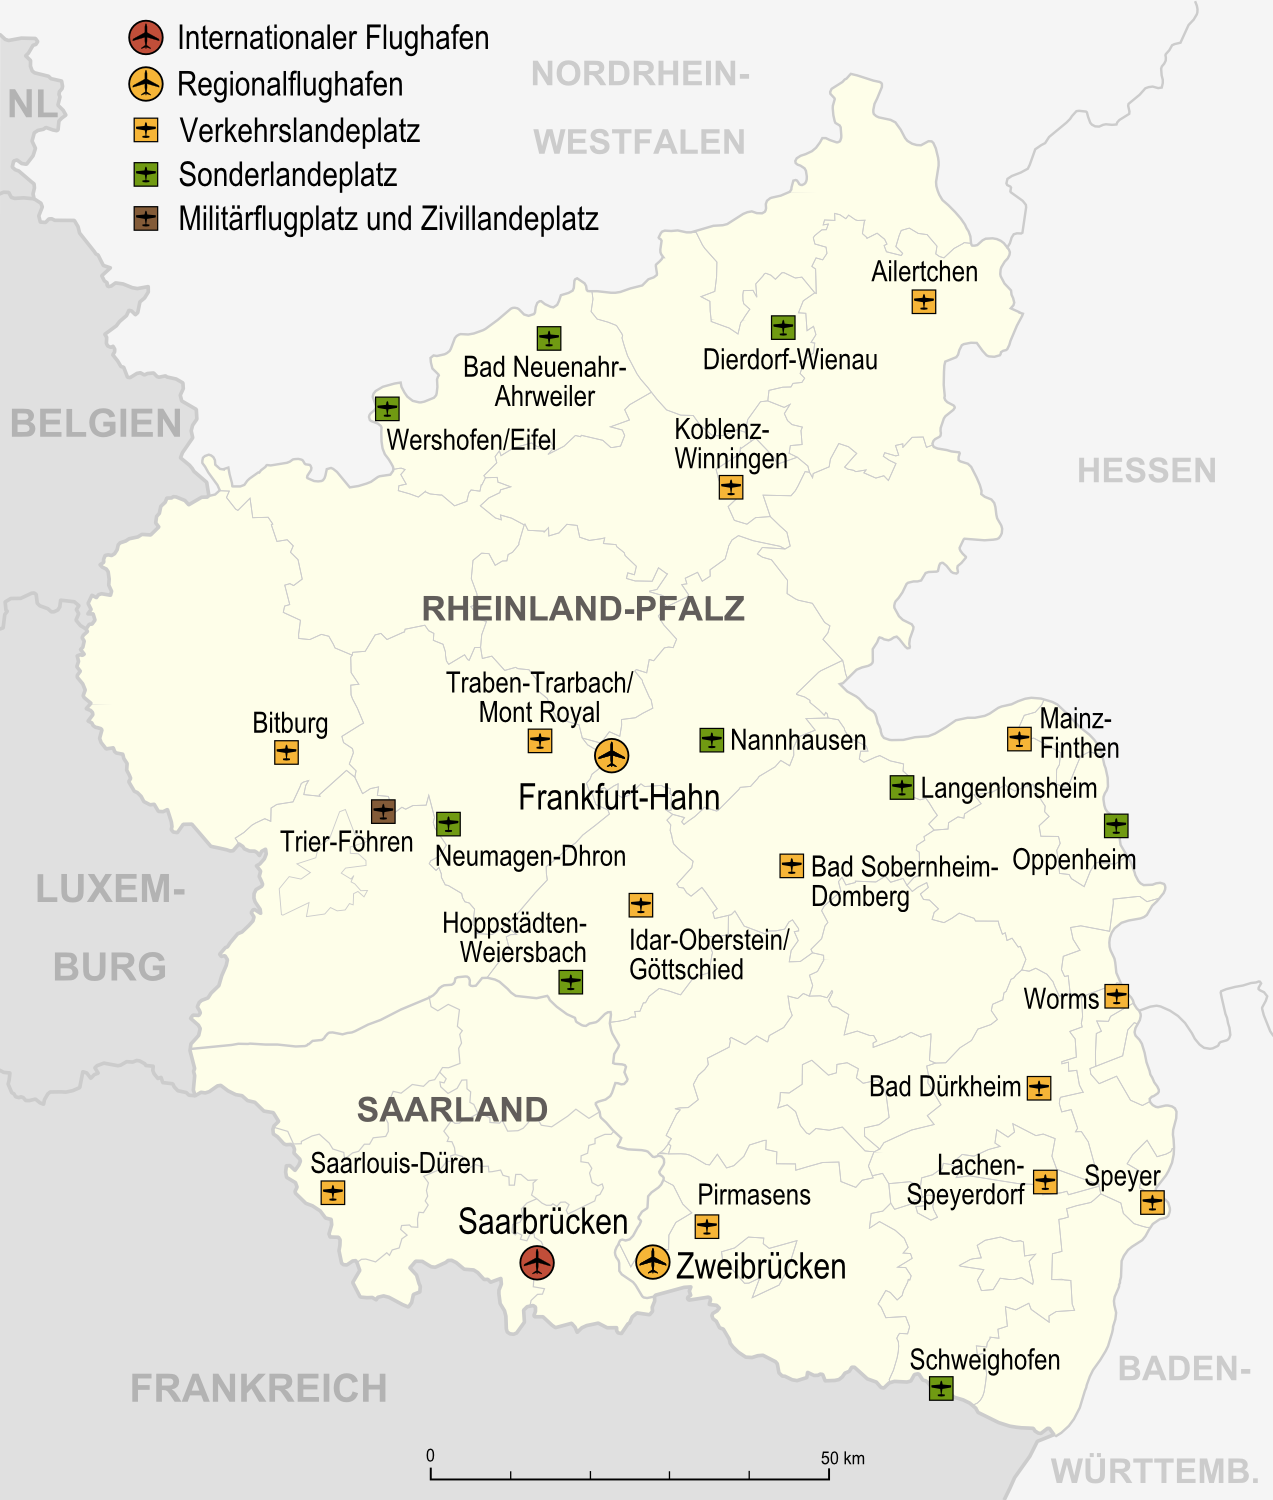 Airports and airfields in Rhineland-Palatinate 2007